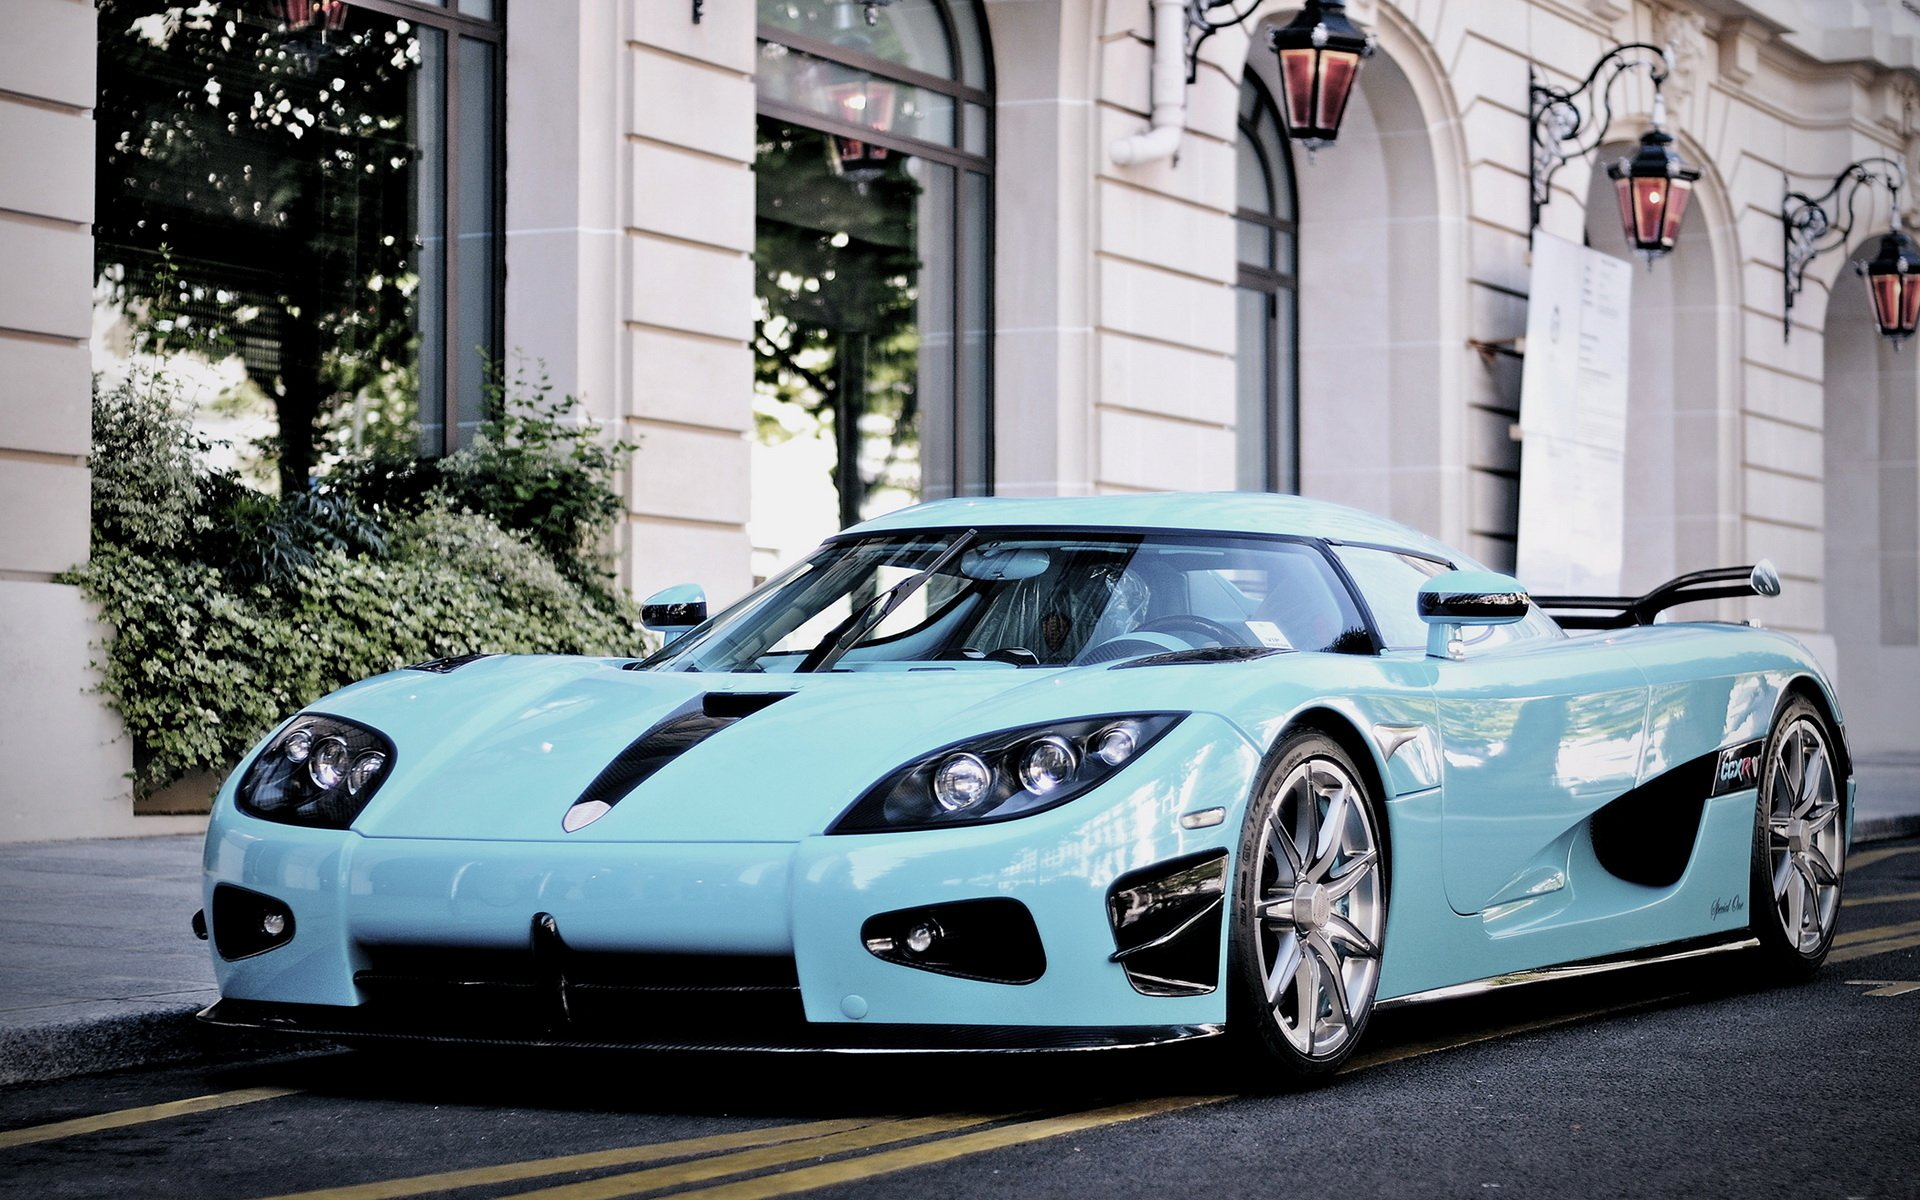 Vehicles   Koenigsegg Agera Koenigsegg Vehicle Koenigsegg Agera R Sport Car  Car Blue Car Wallpaper